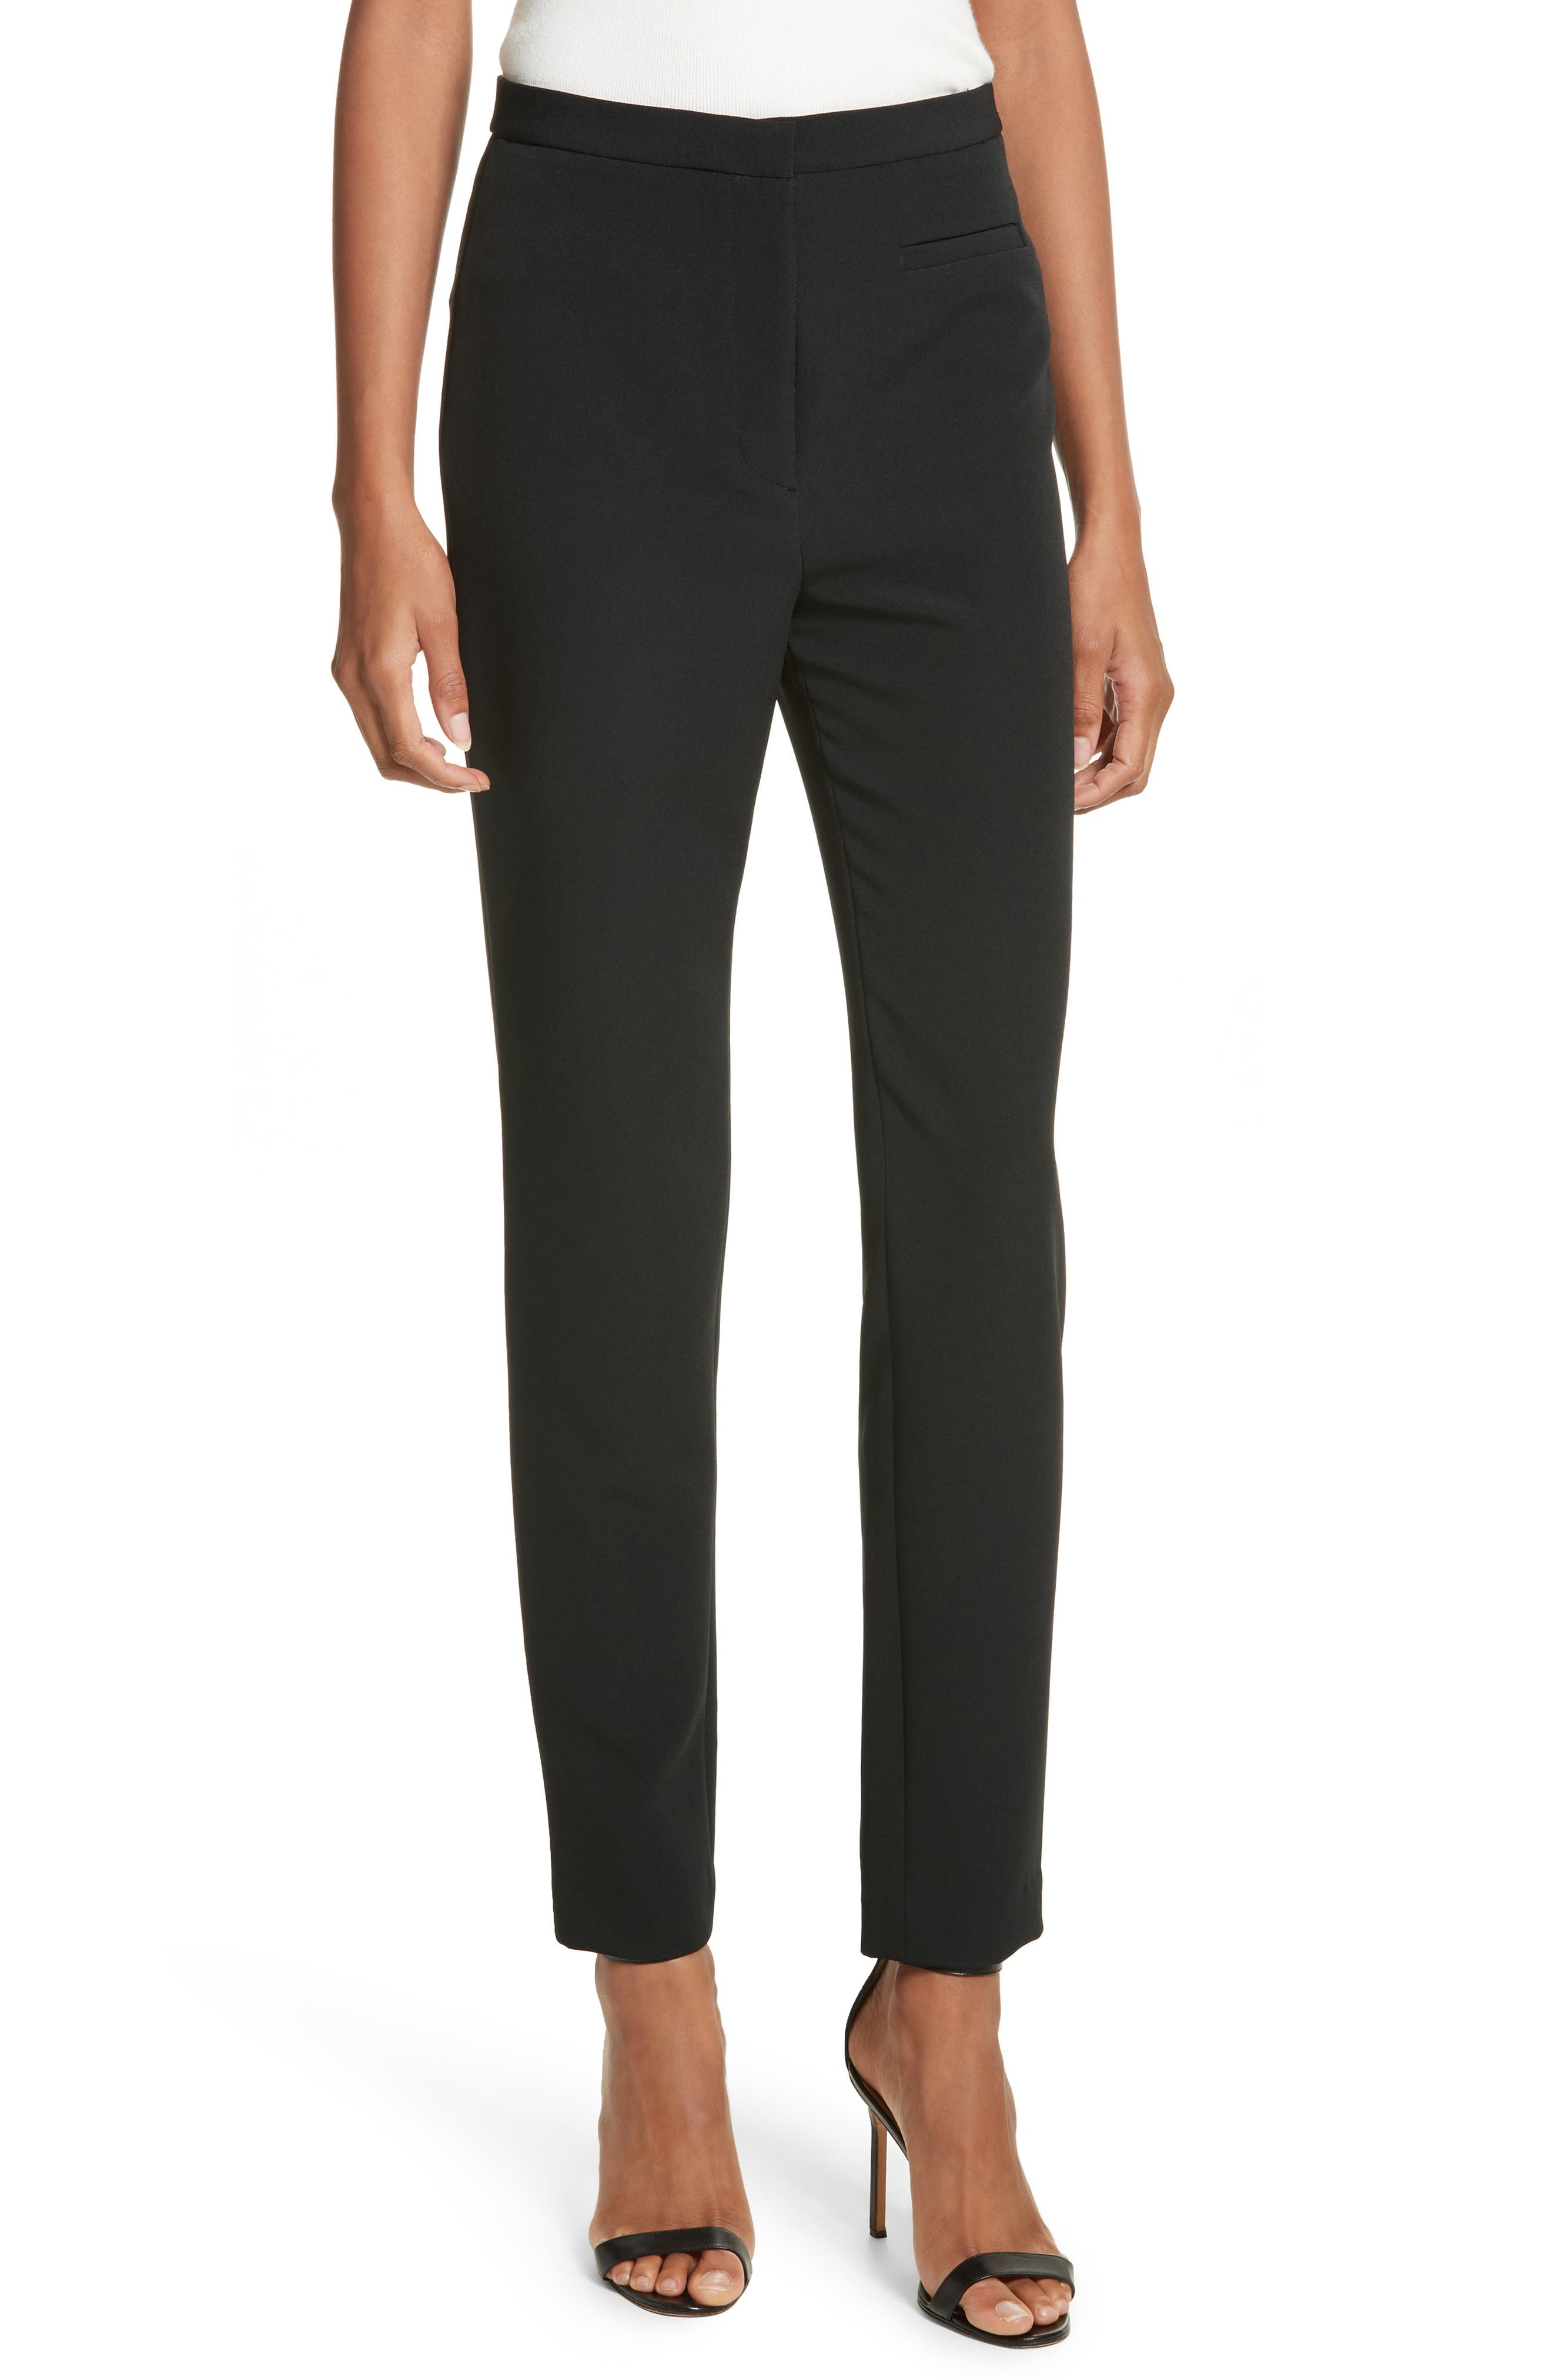 Main Image - Milly Stretch Crepe High Waist Skinny Pants